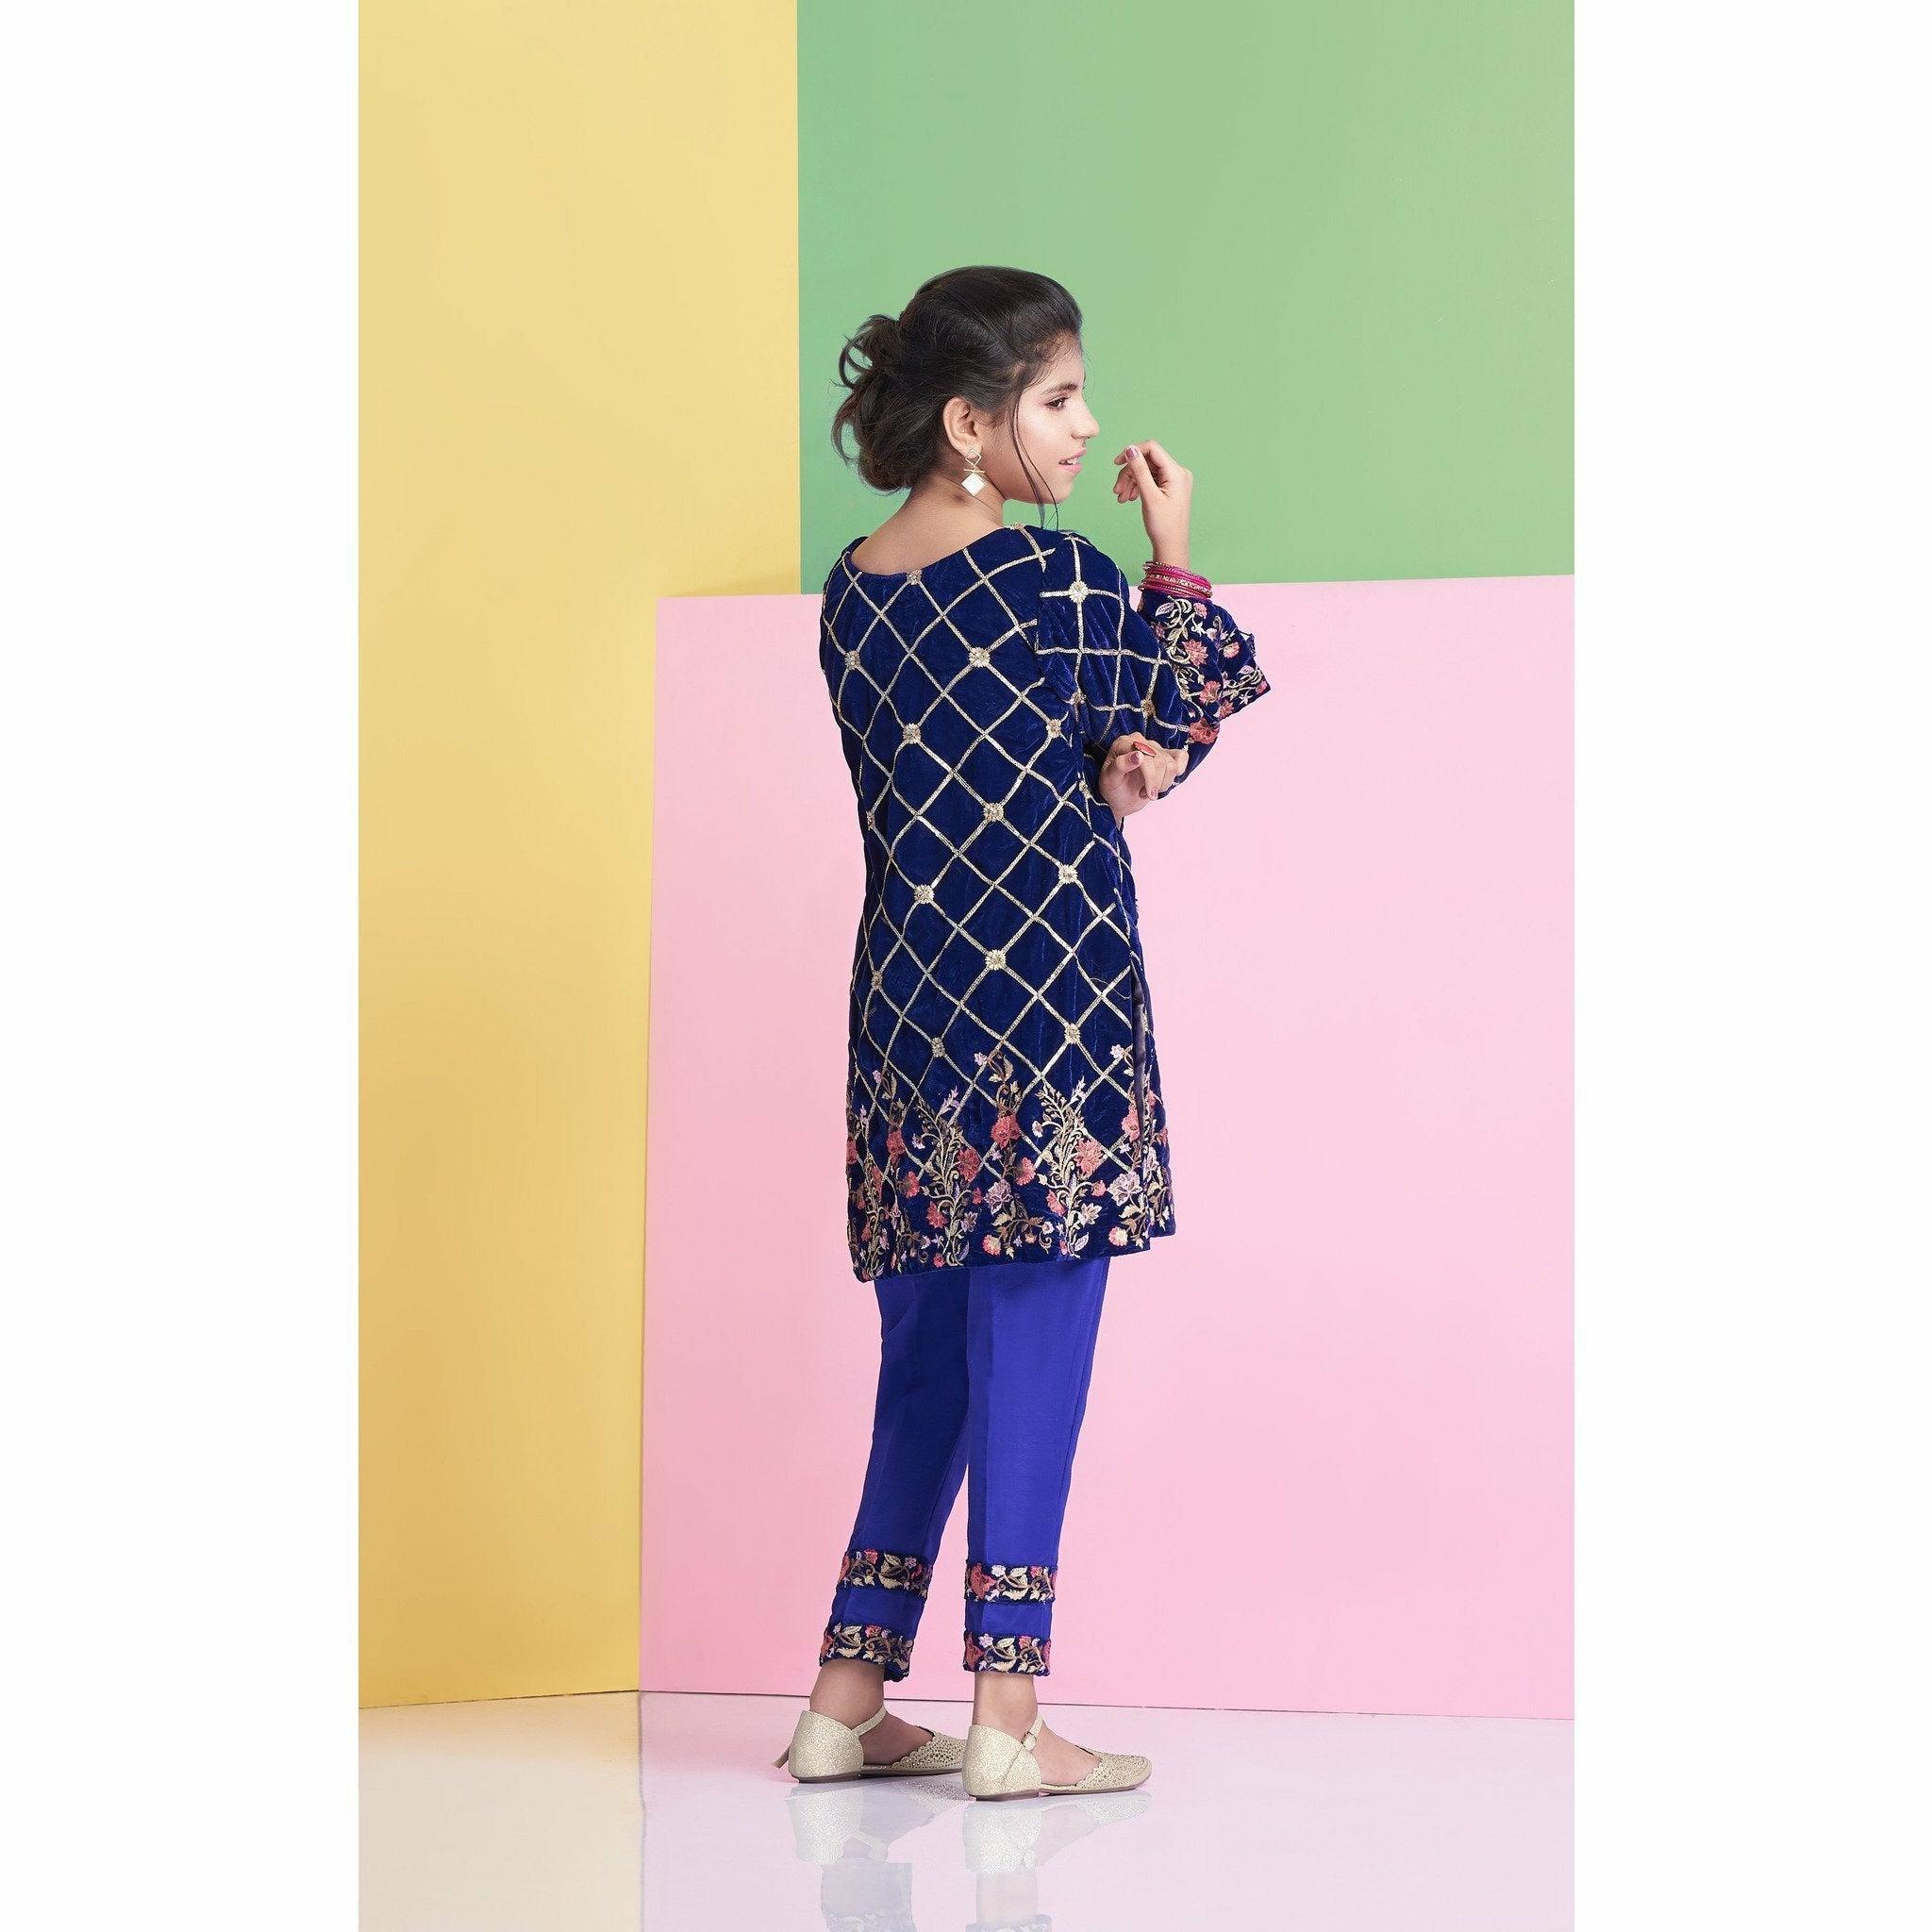 KIDS Clothing UK